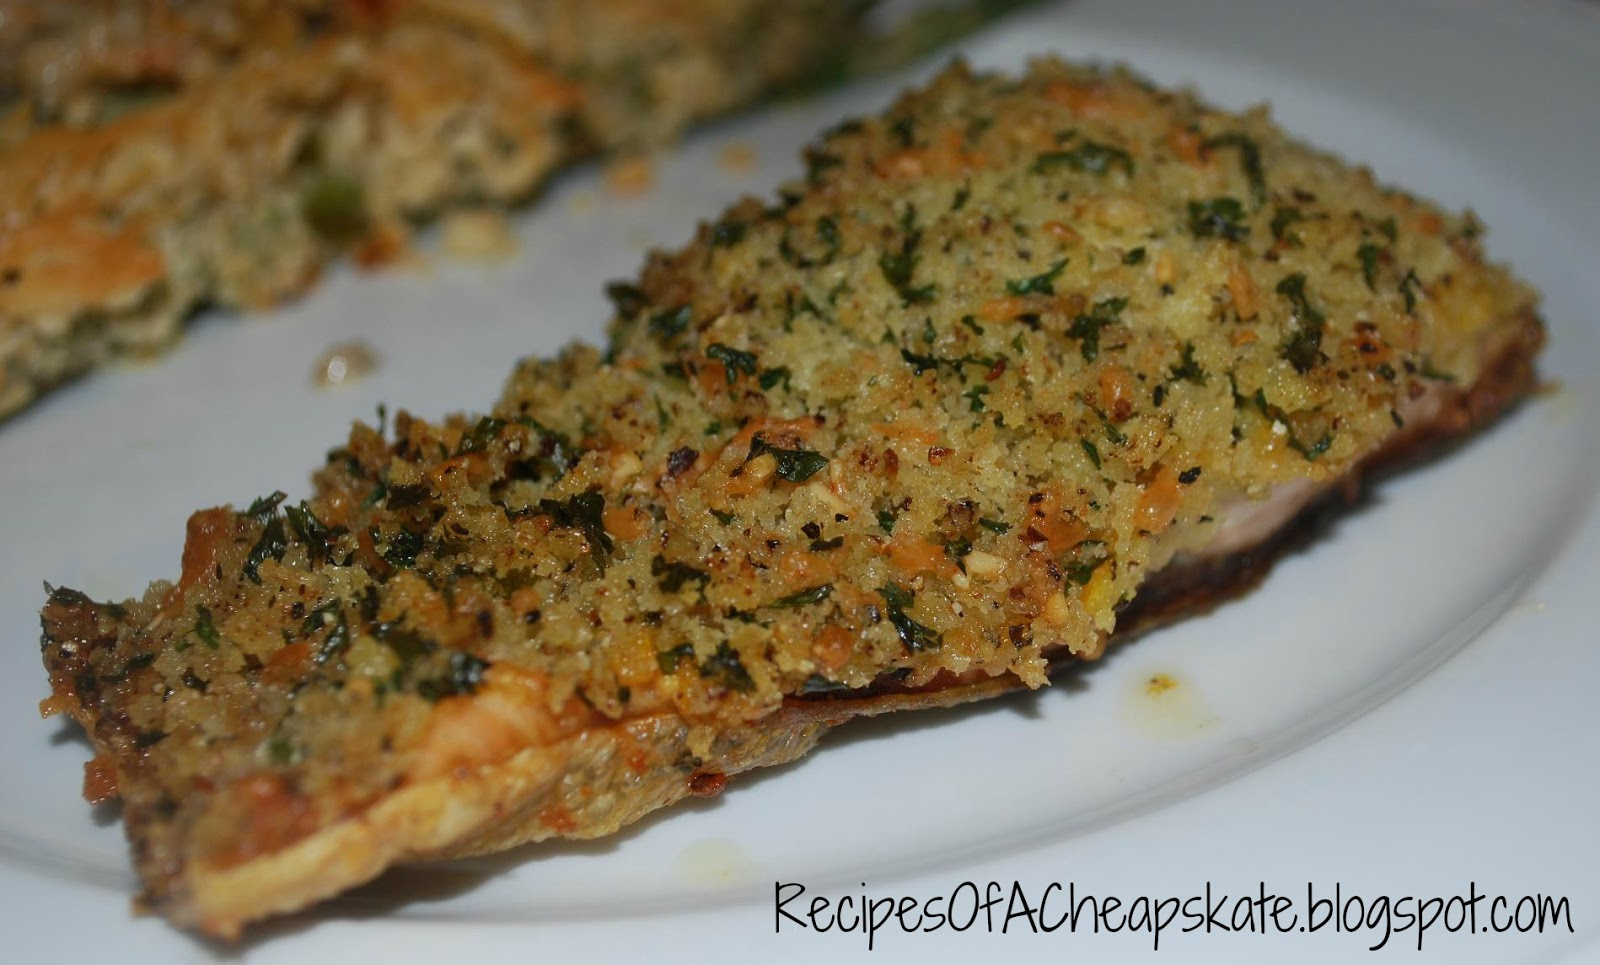 Recipes of a Cheapskate: Panko Crusted Salmon